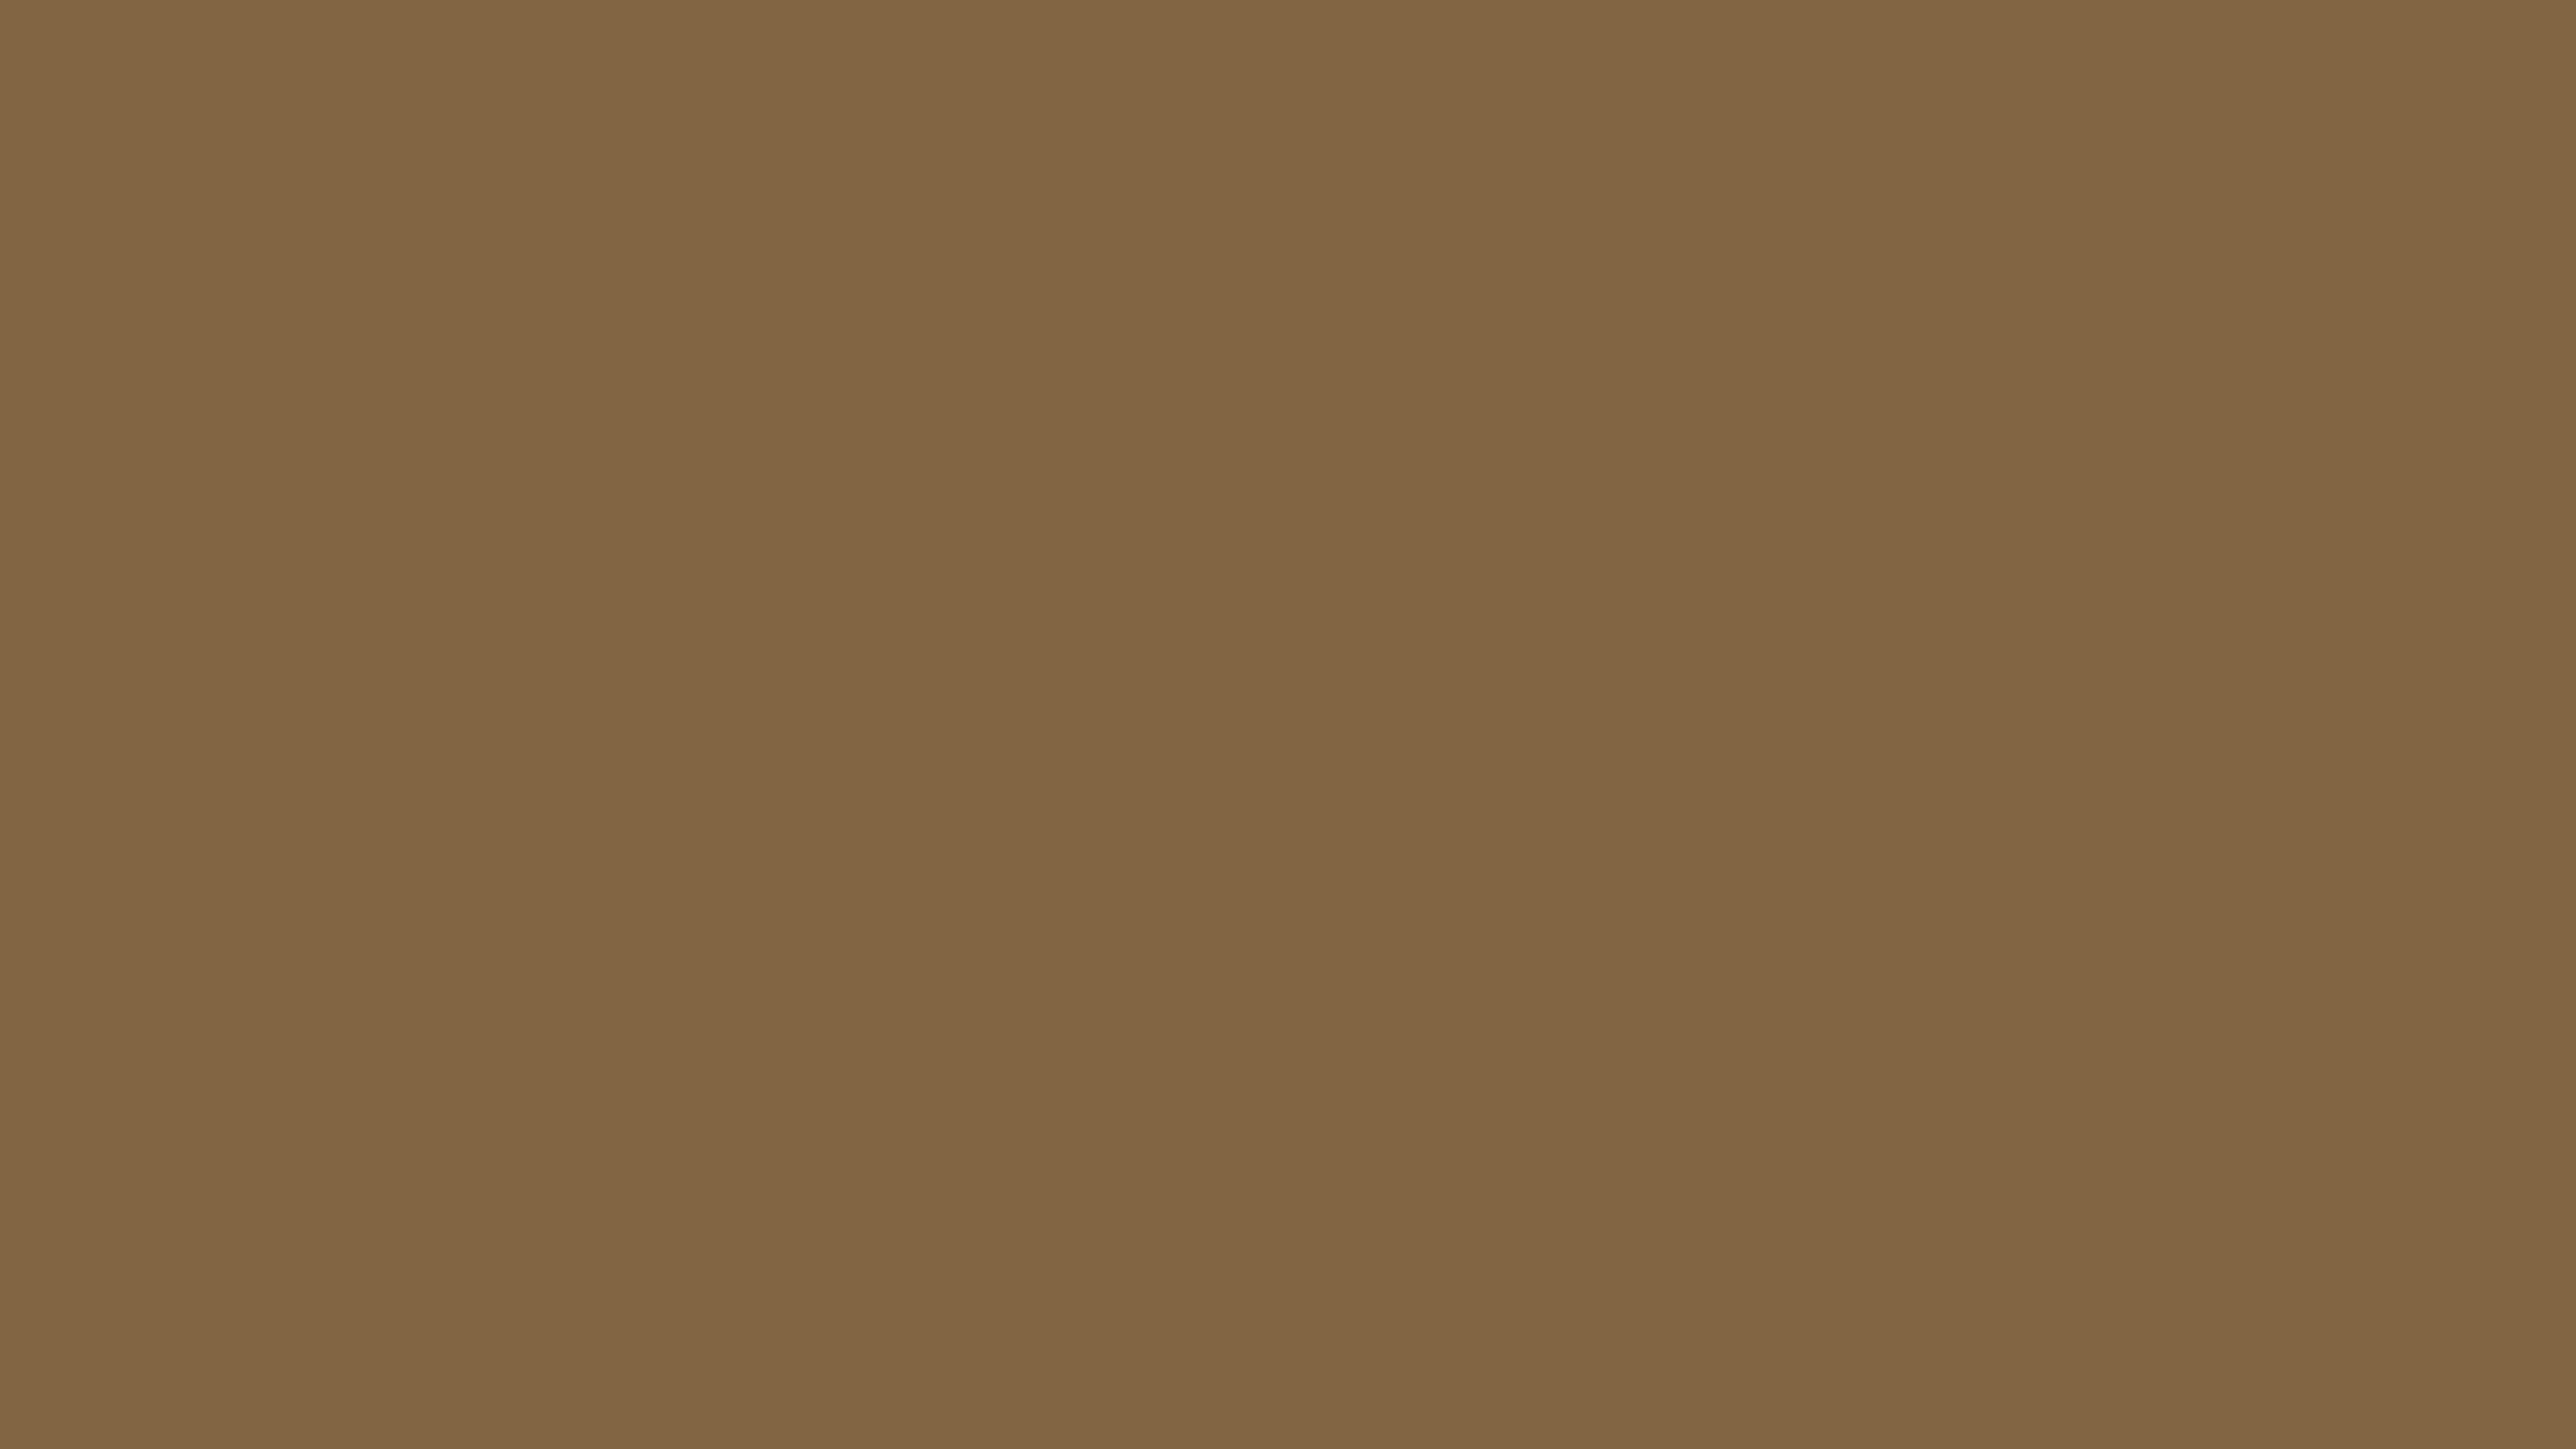 3840x2160 Raw Umber Solid Color Background